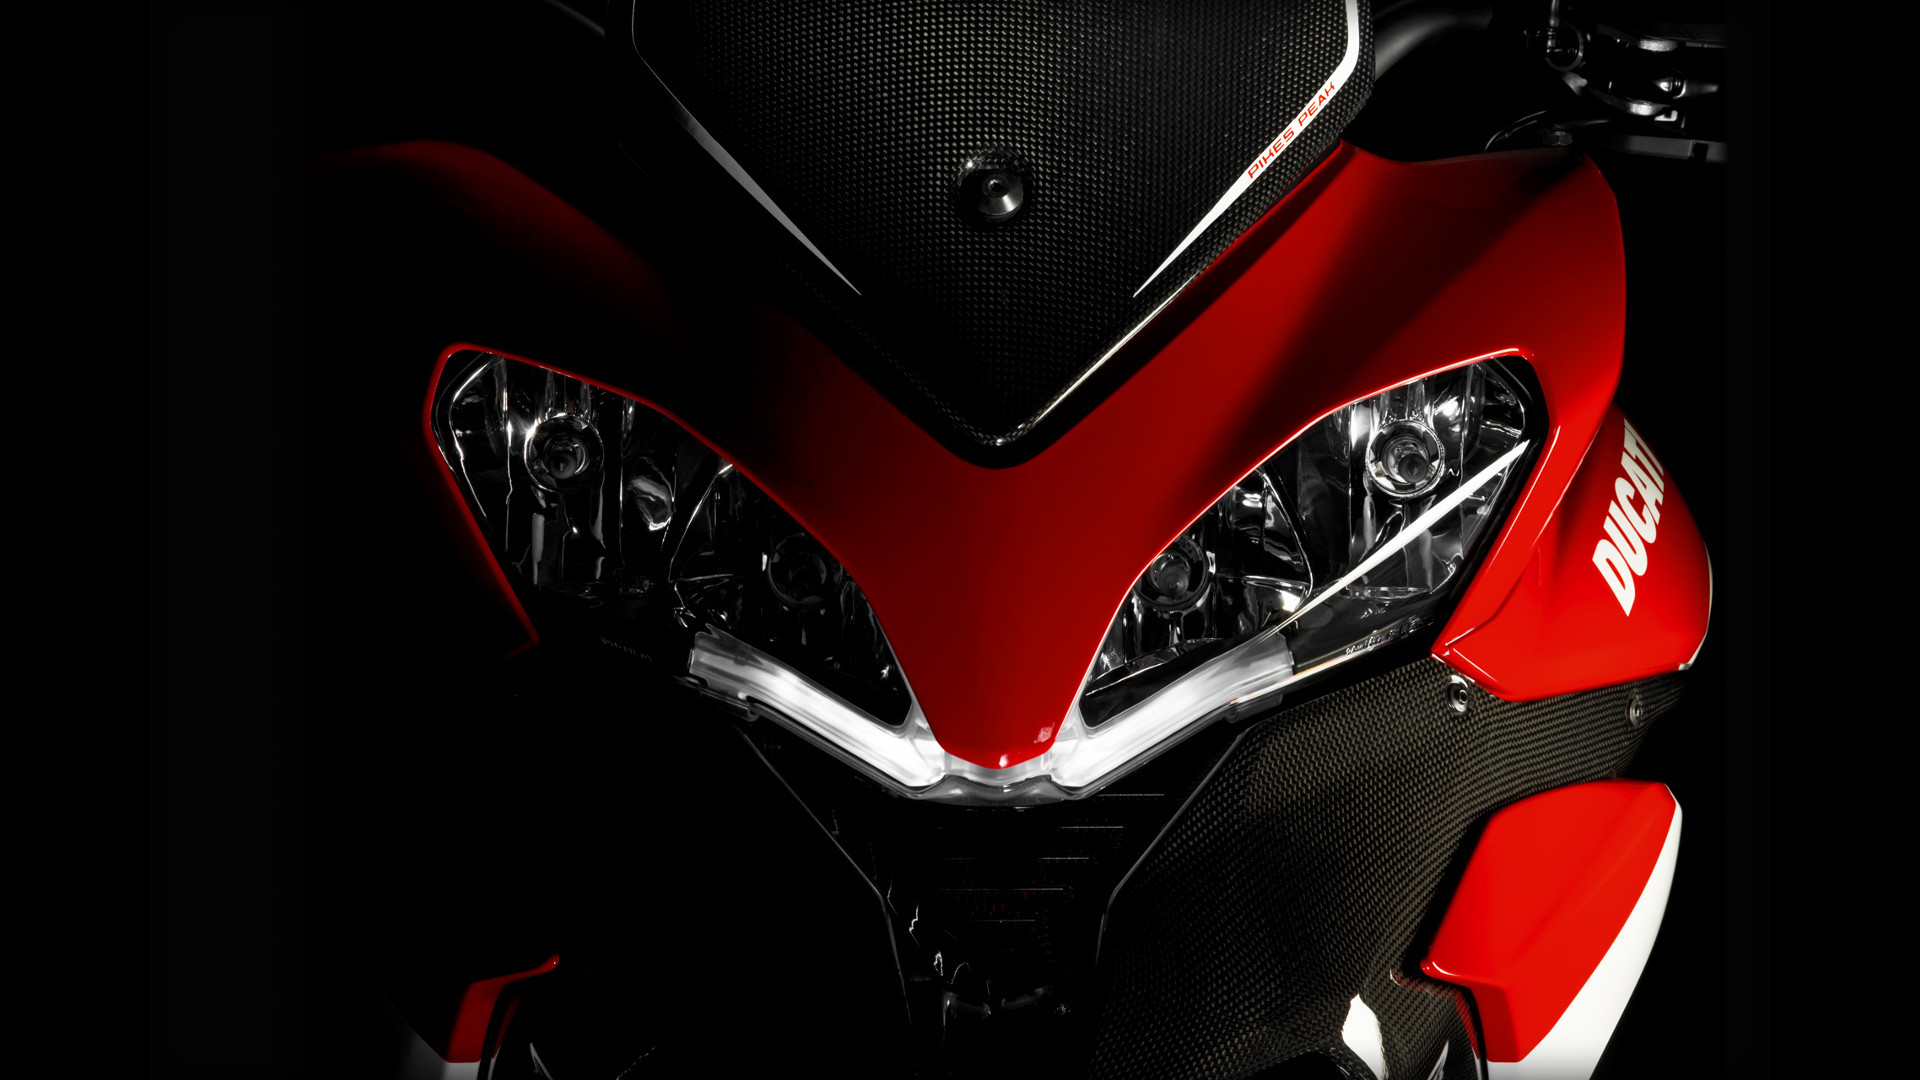 Background Wallpaper: Ducati Multistrada Wallpapers Images Photos Pictures